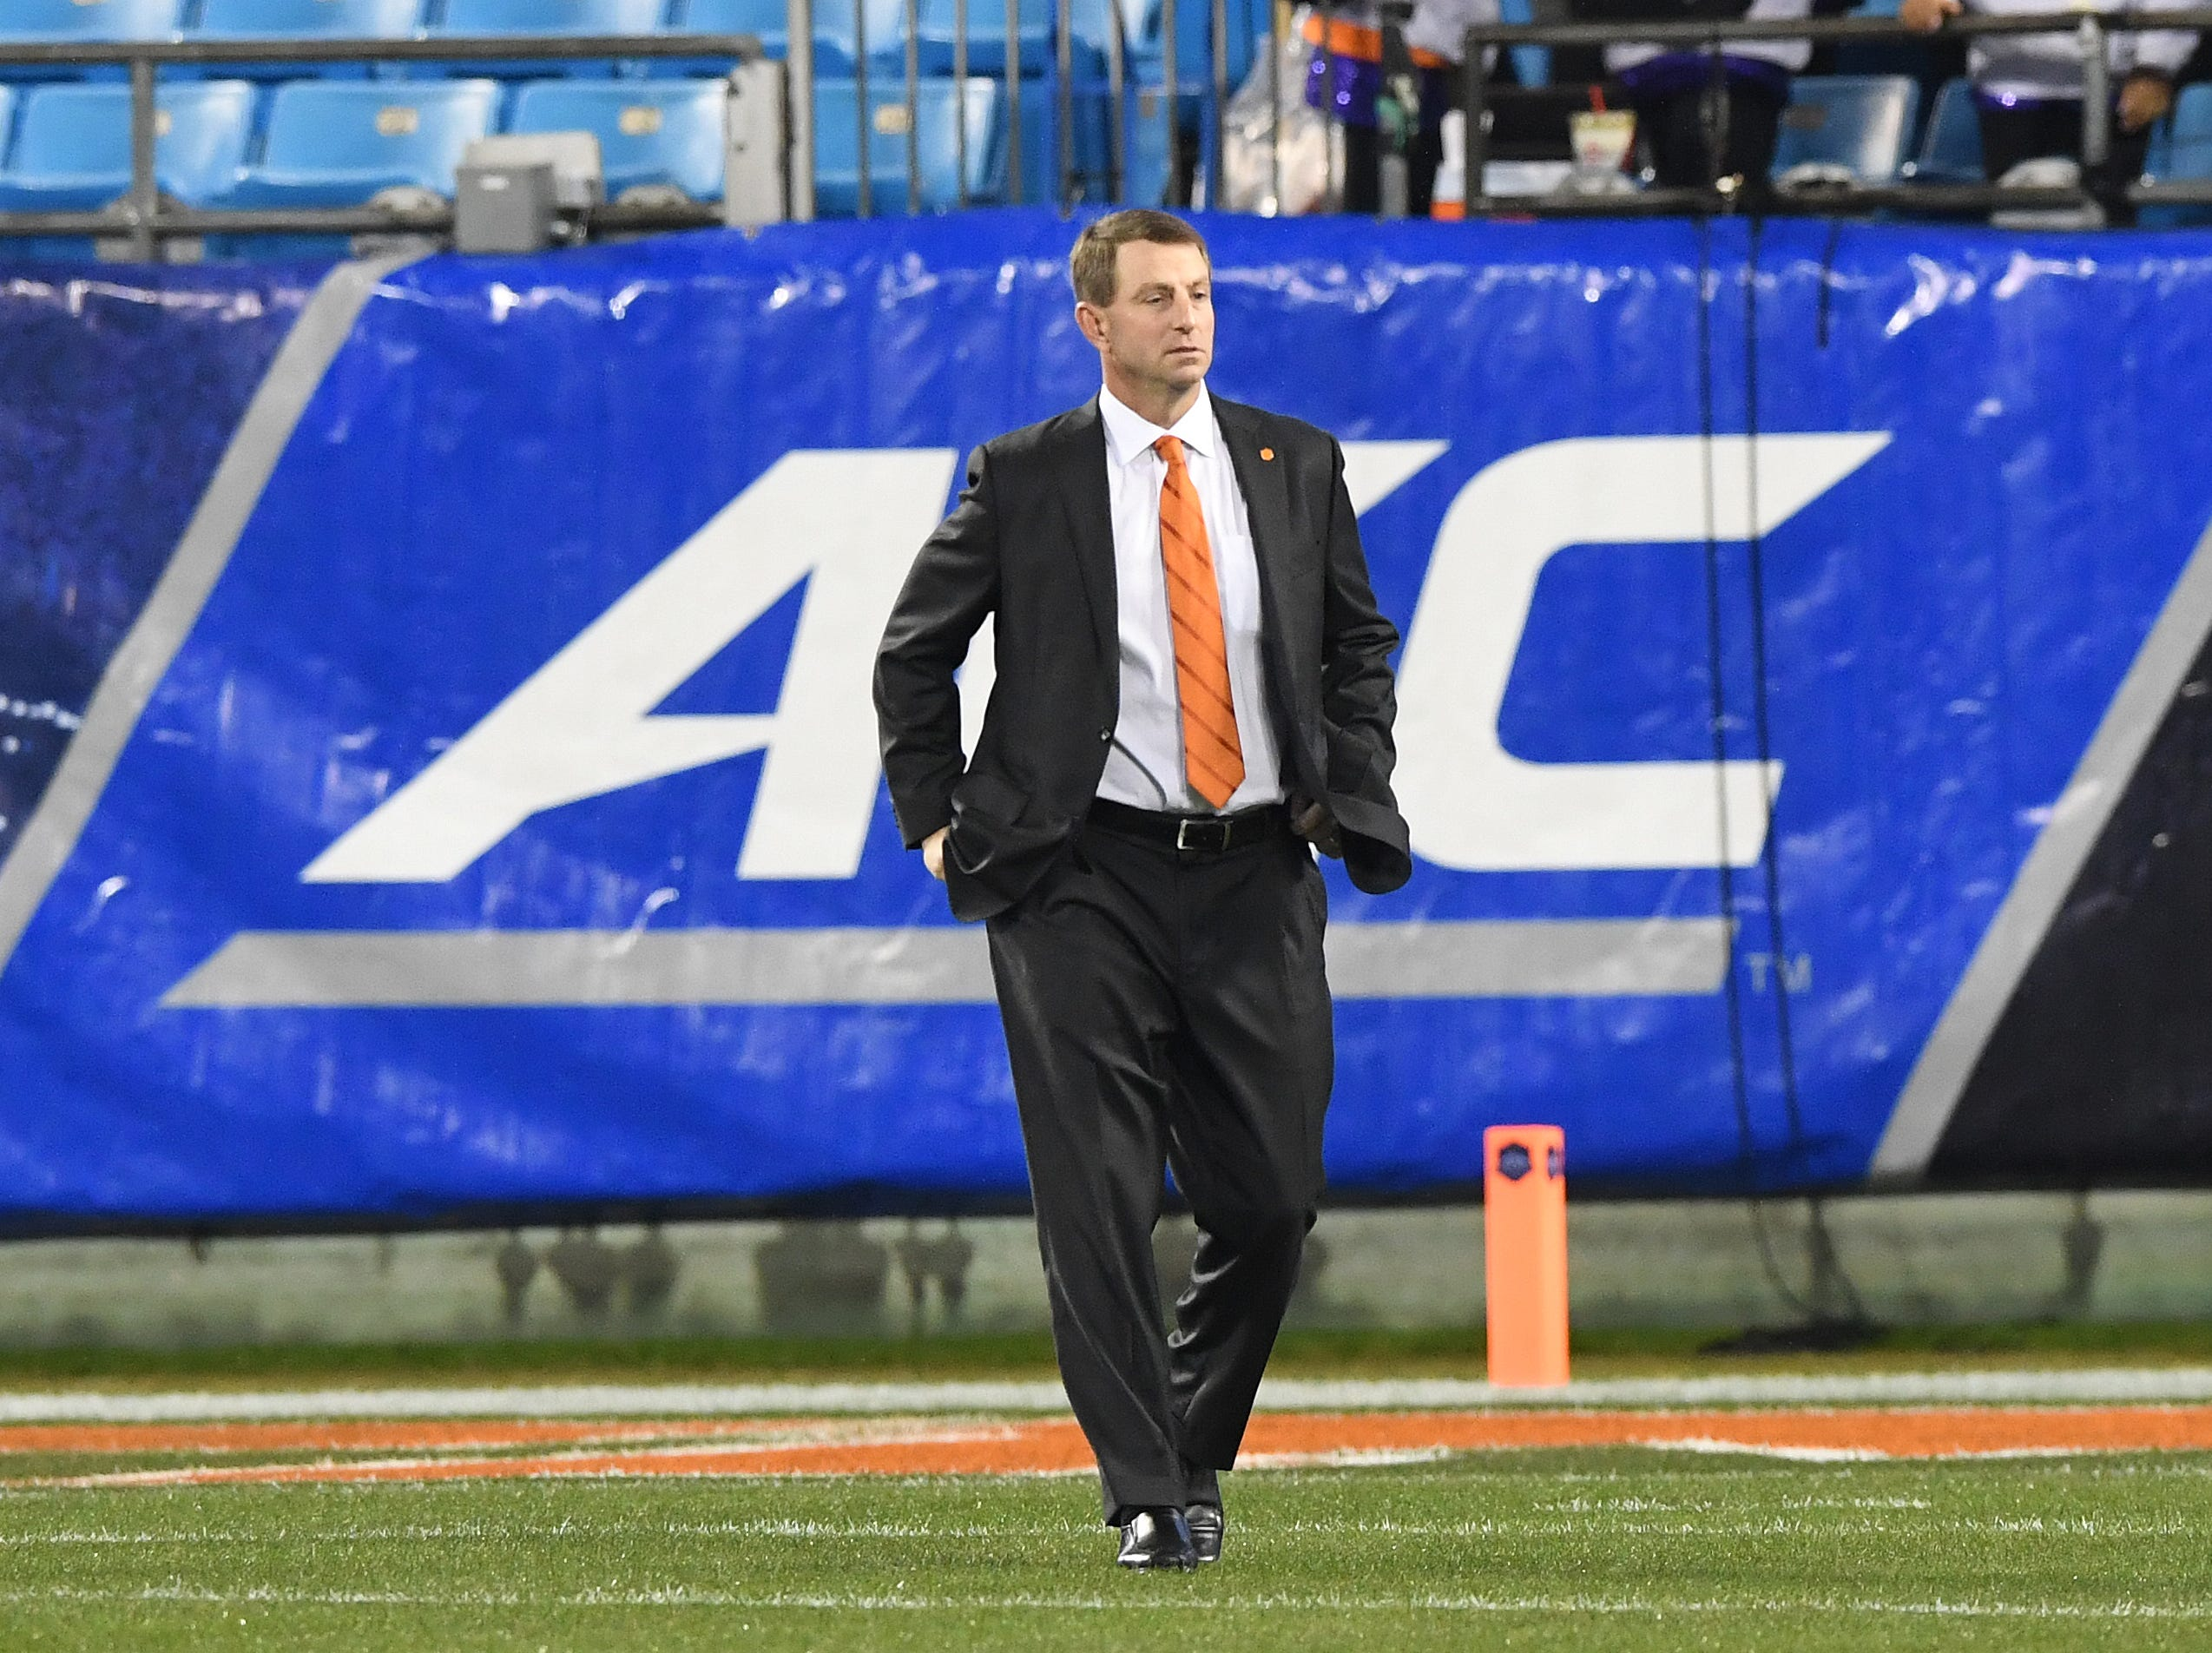 Clemson head coach Dabo Swinney walks the field after arriving at Bank of America Stadium in Charlotte, N.C. for the Dr. Pepper ACC Championship Saturday, December 1, 2017.